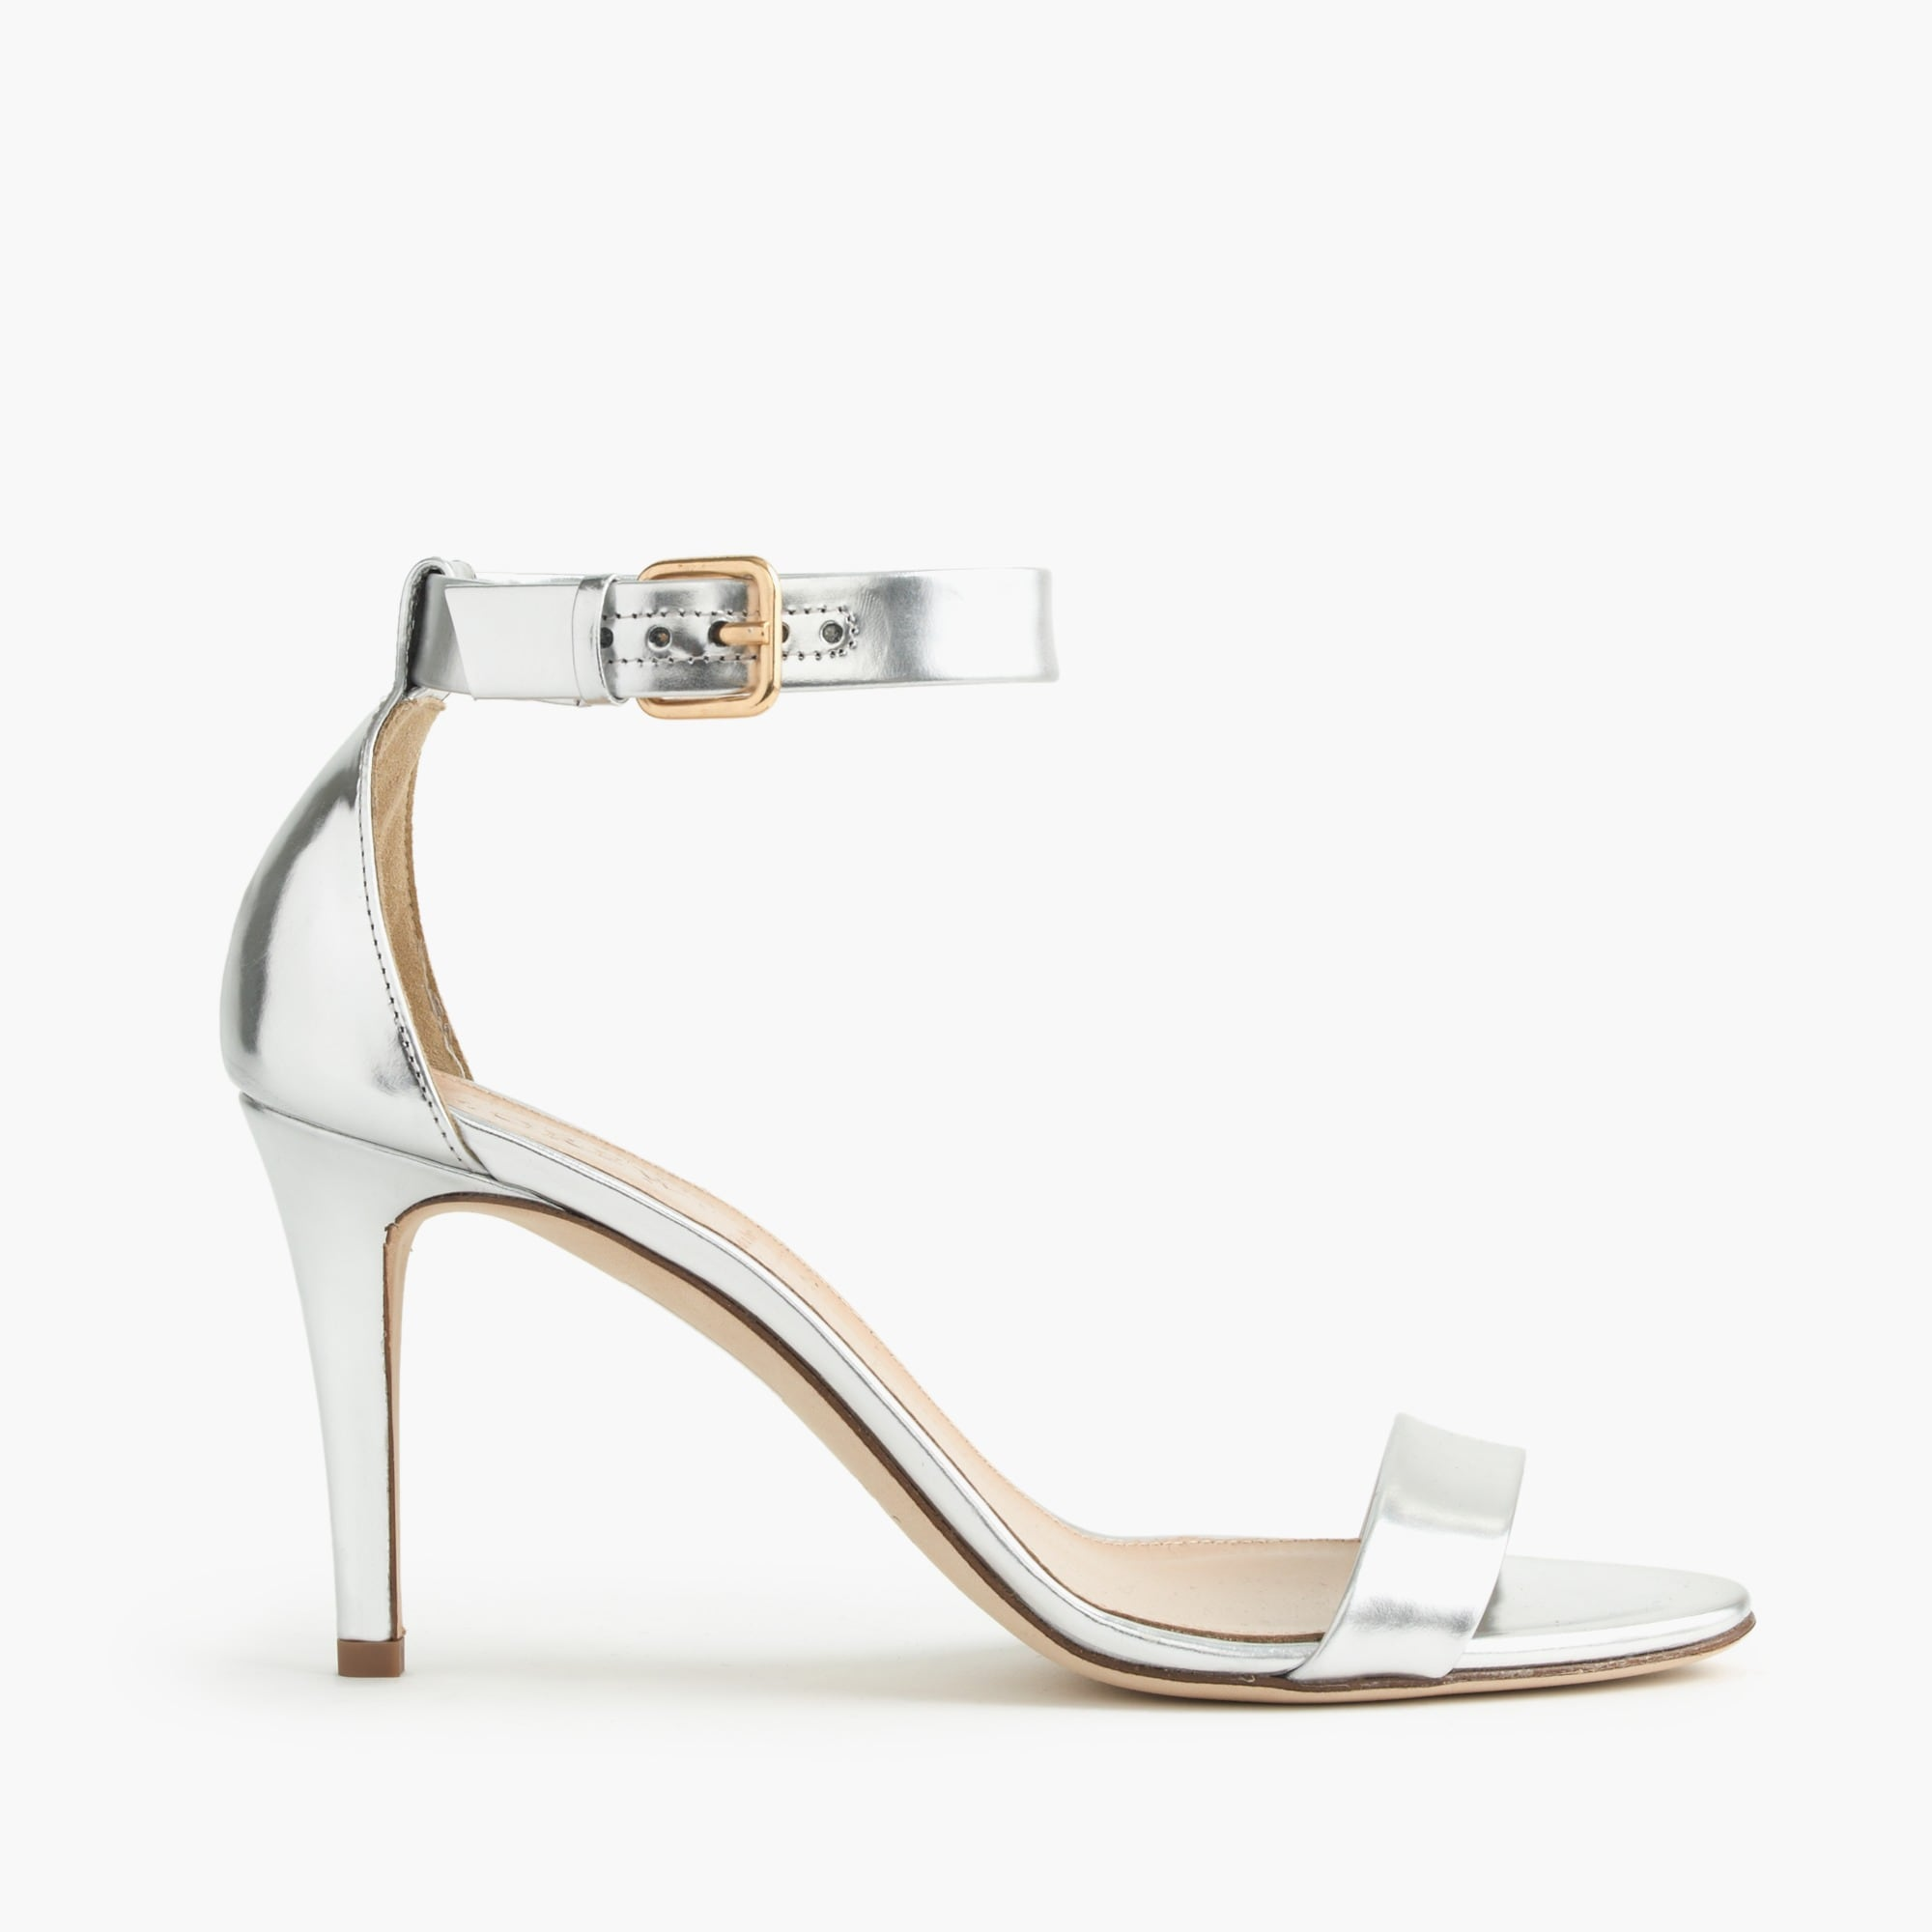 mirror metallic high-heel sandals : women's sandals